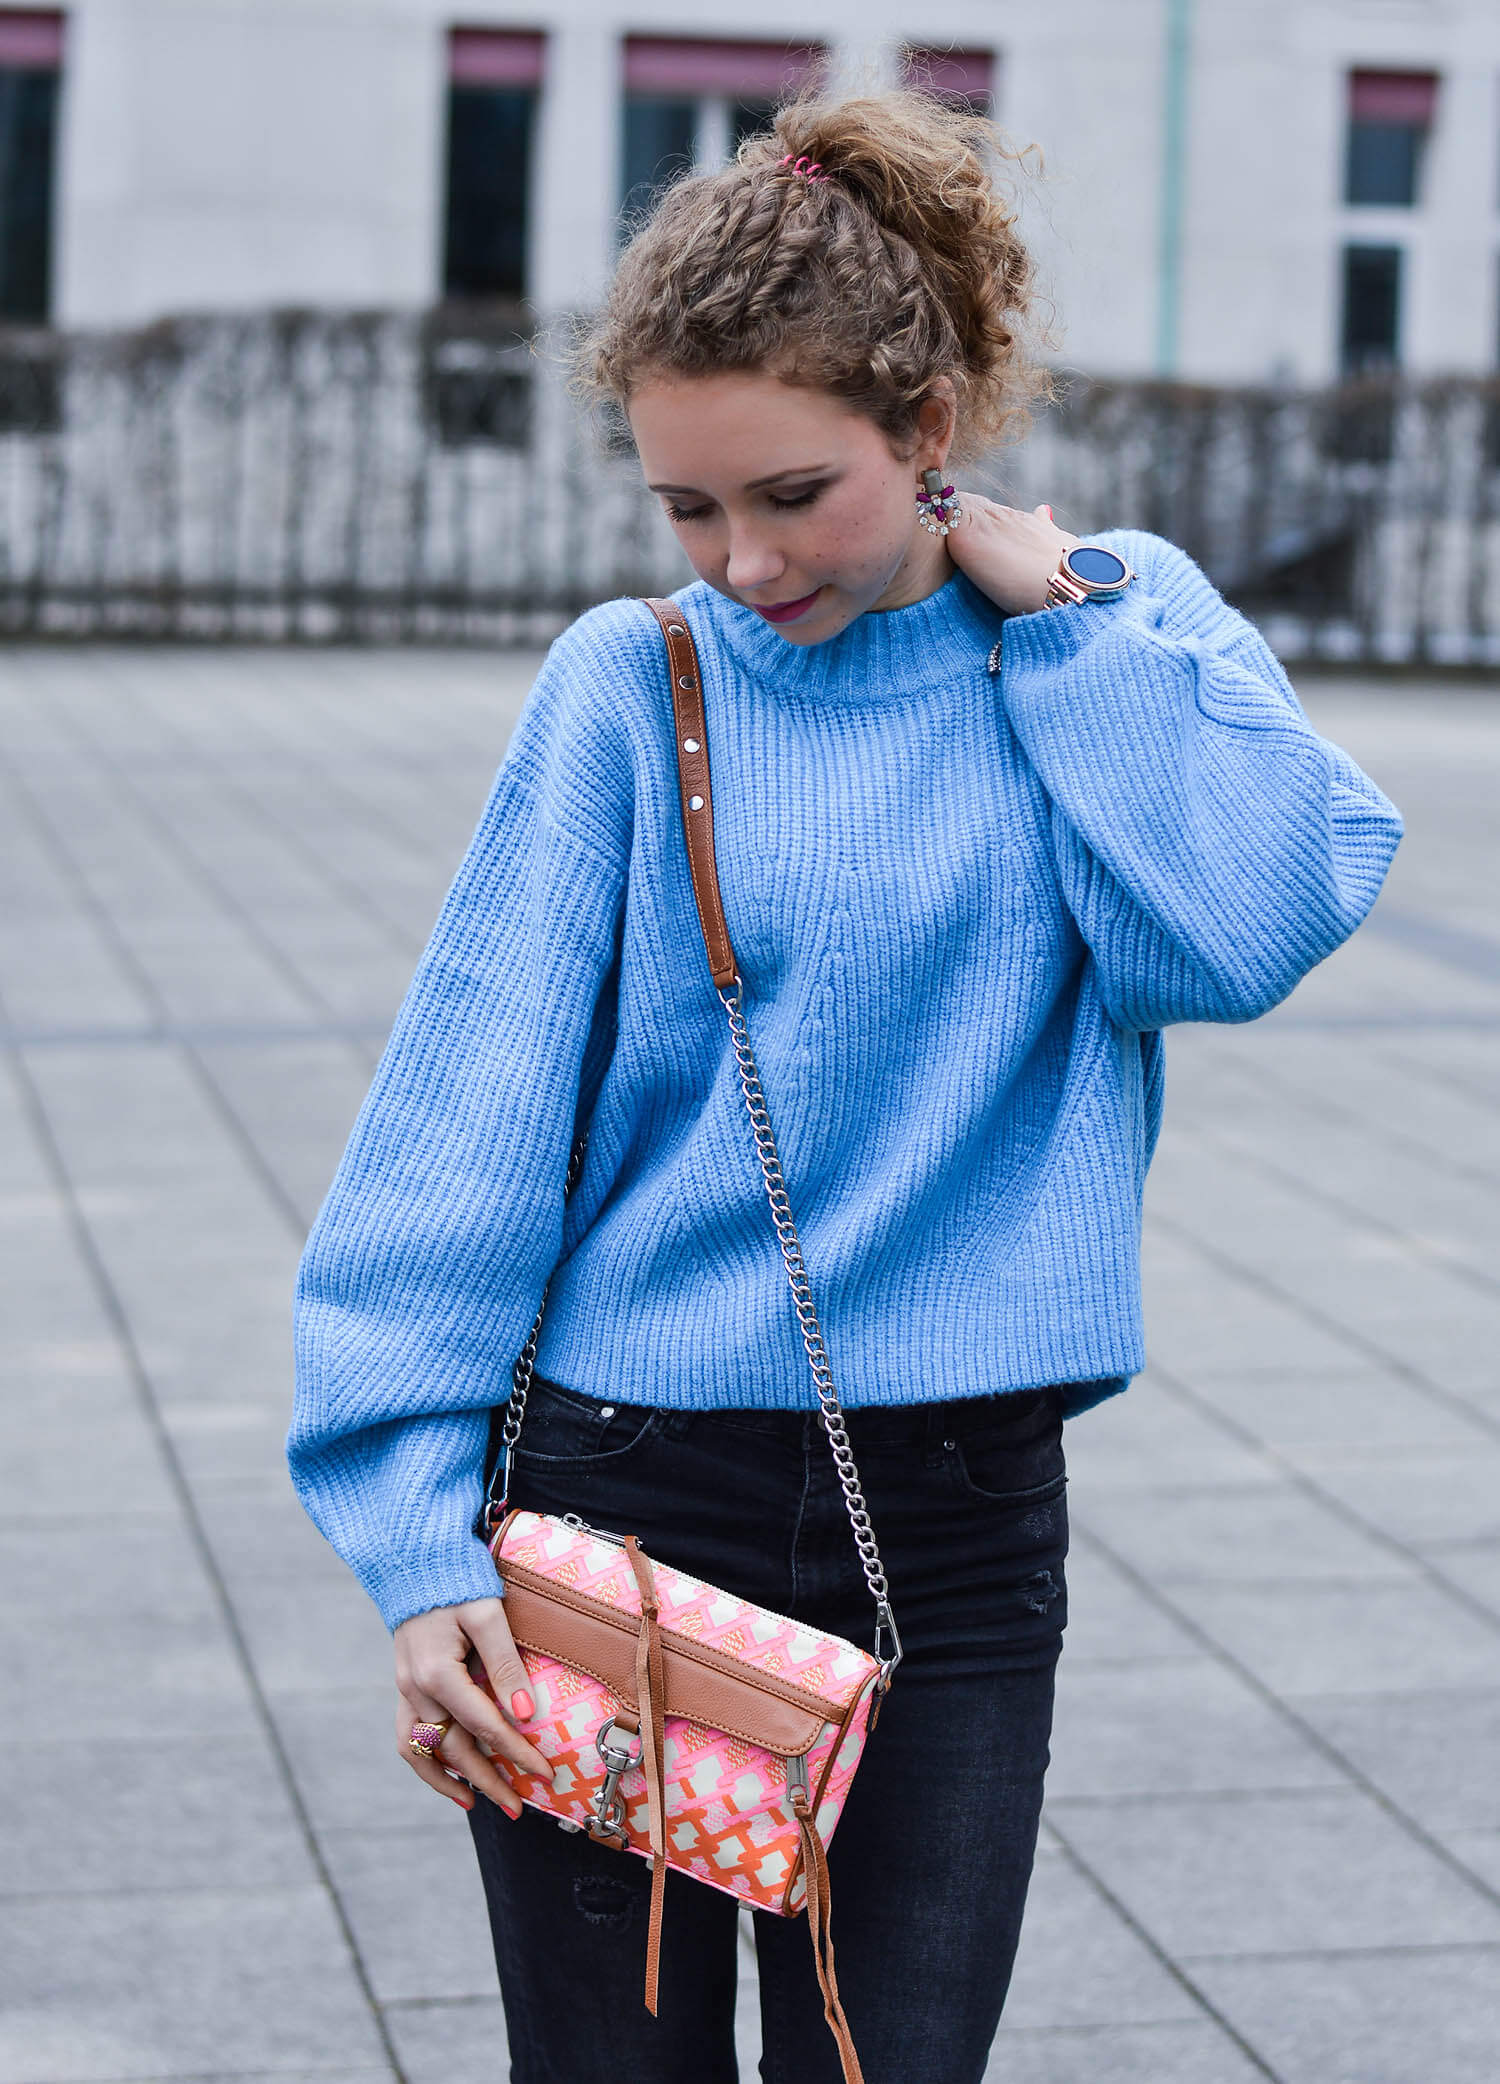 Outfit-Light-Blue-Knit-Ripped-Jeans-and-Pink-Pumps-kationette-fashionblogger-nrw